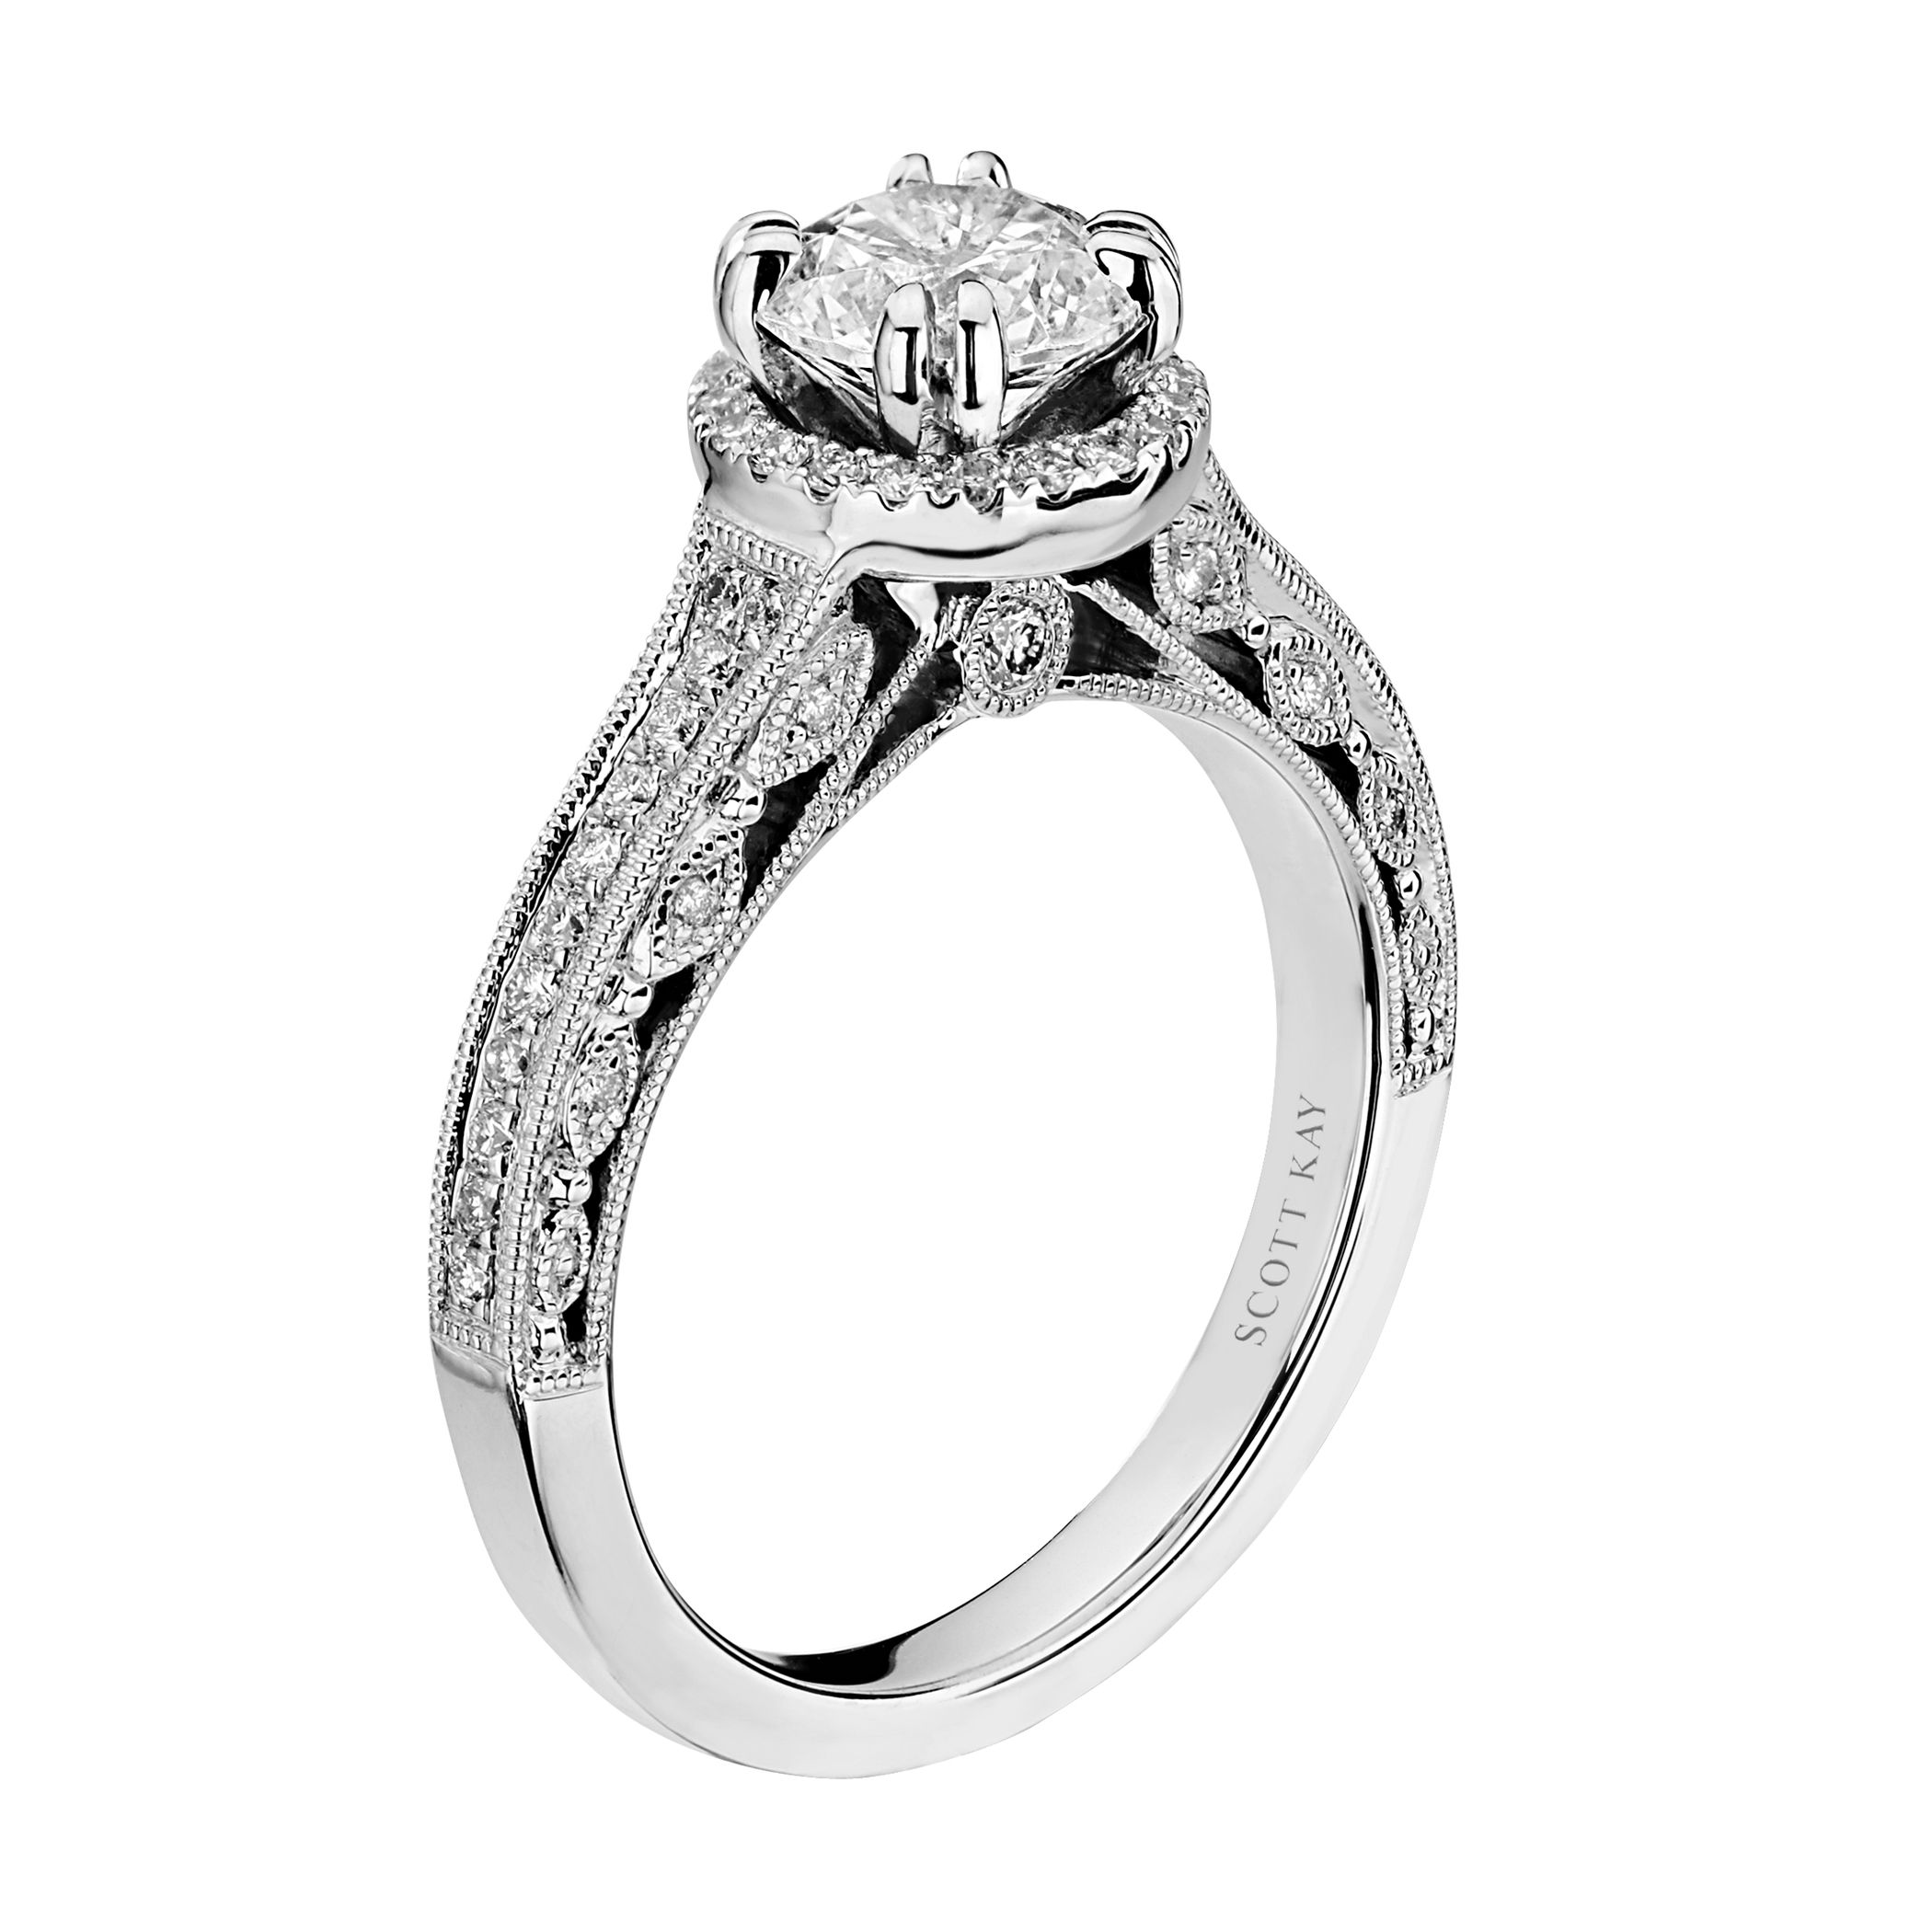 This engagement ring features 50 diamonds set in white ...